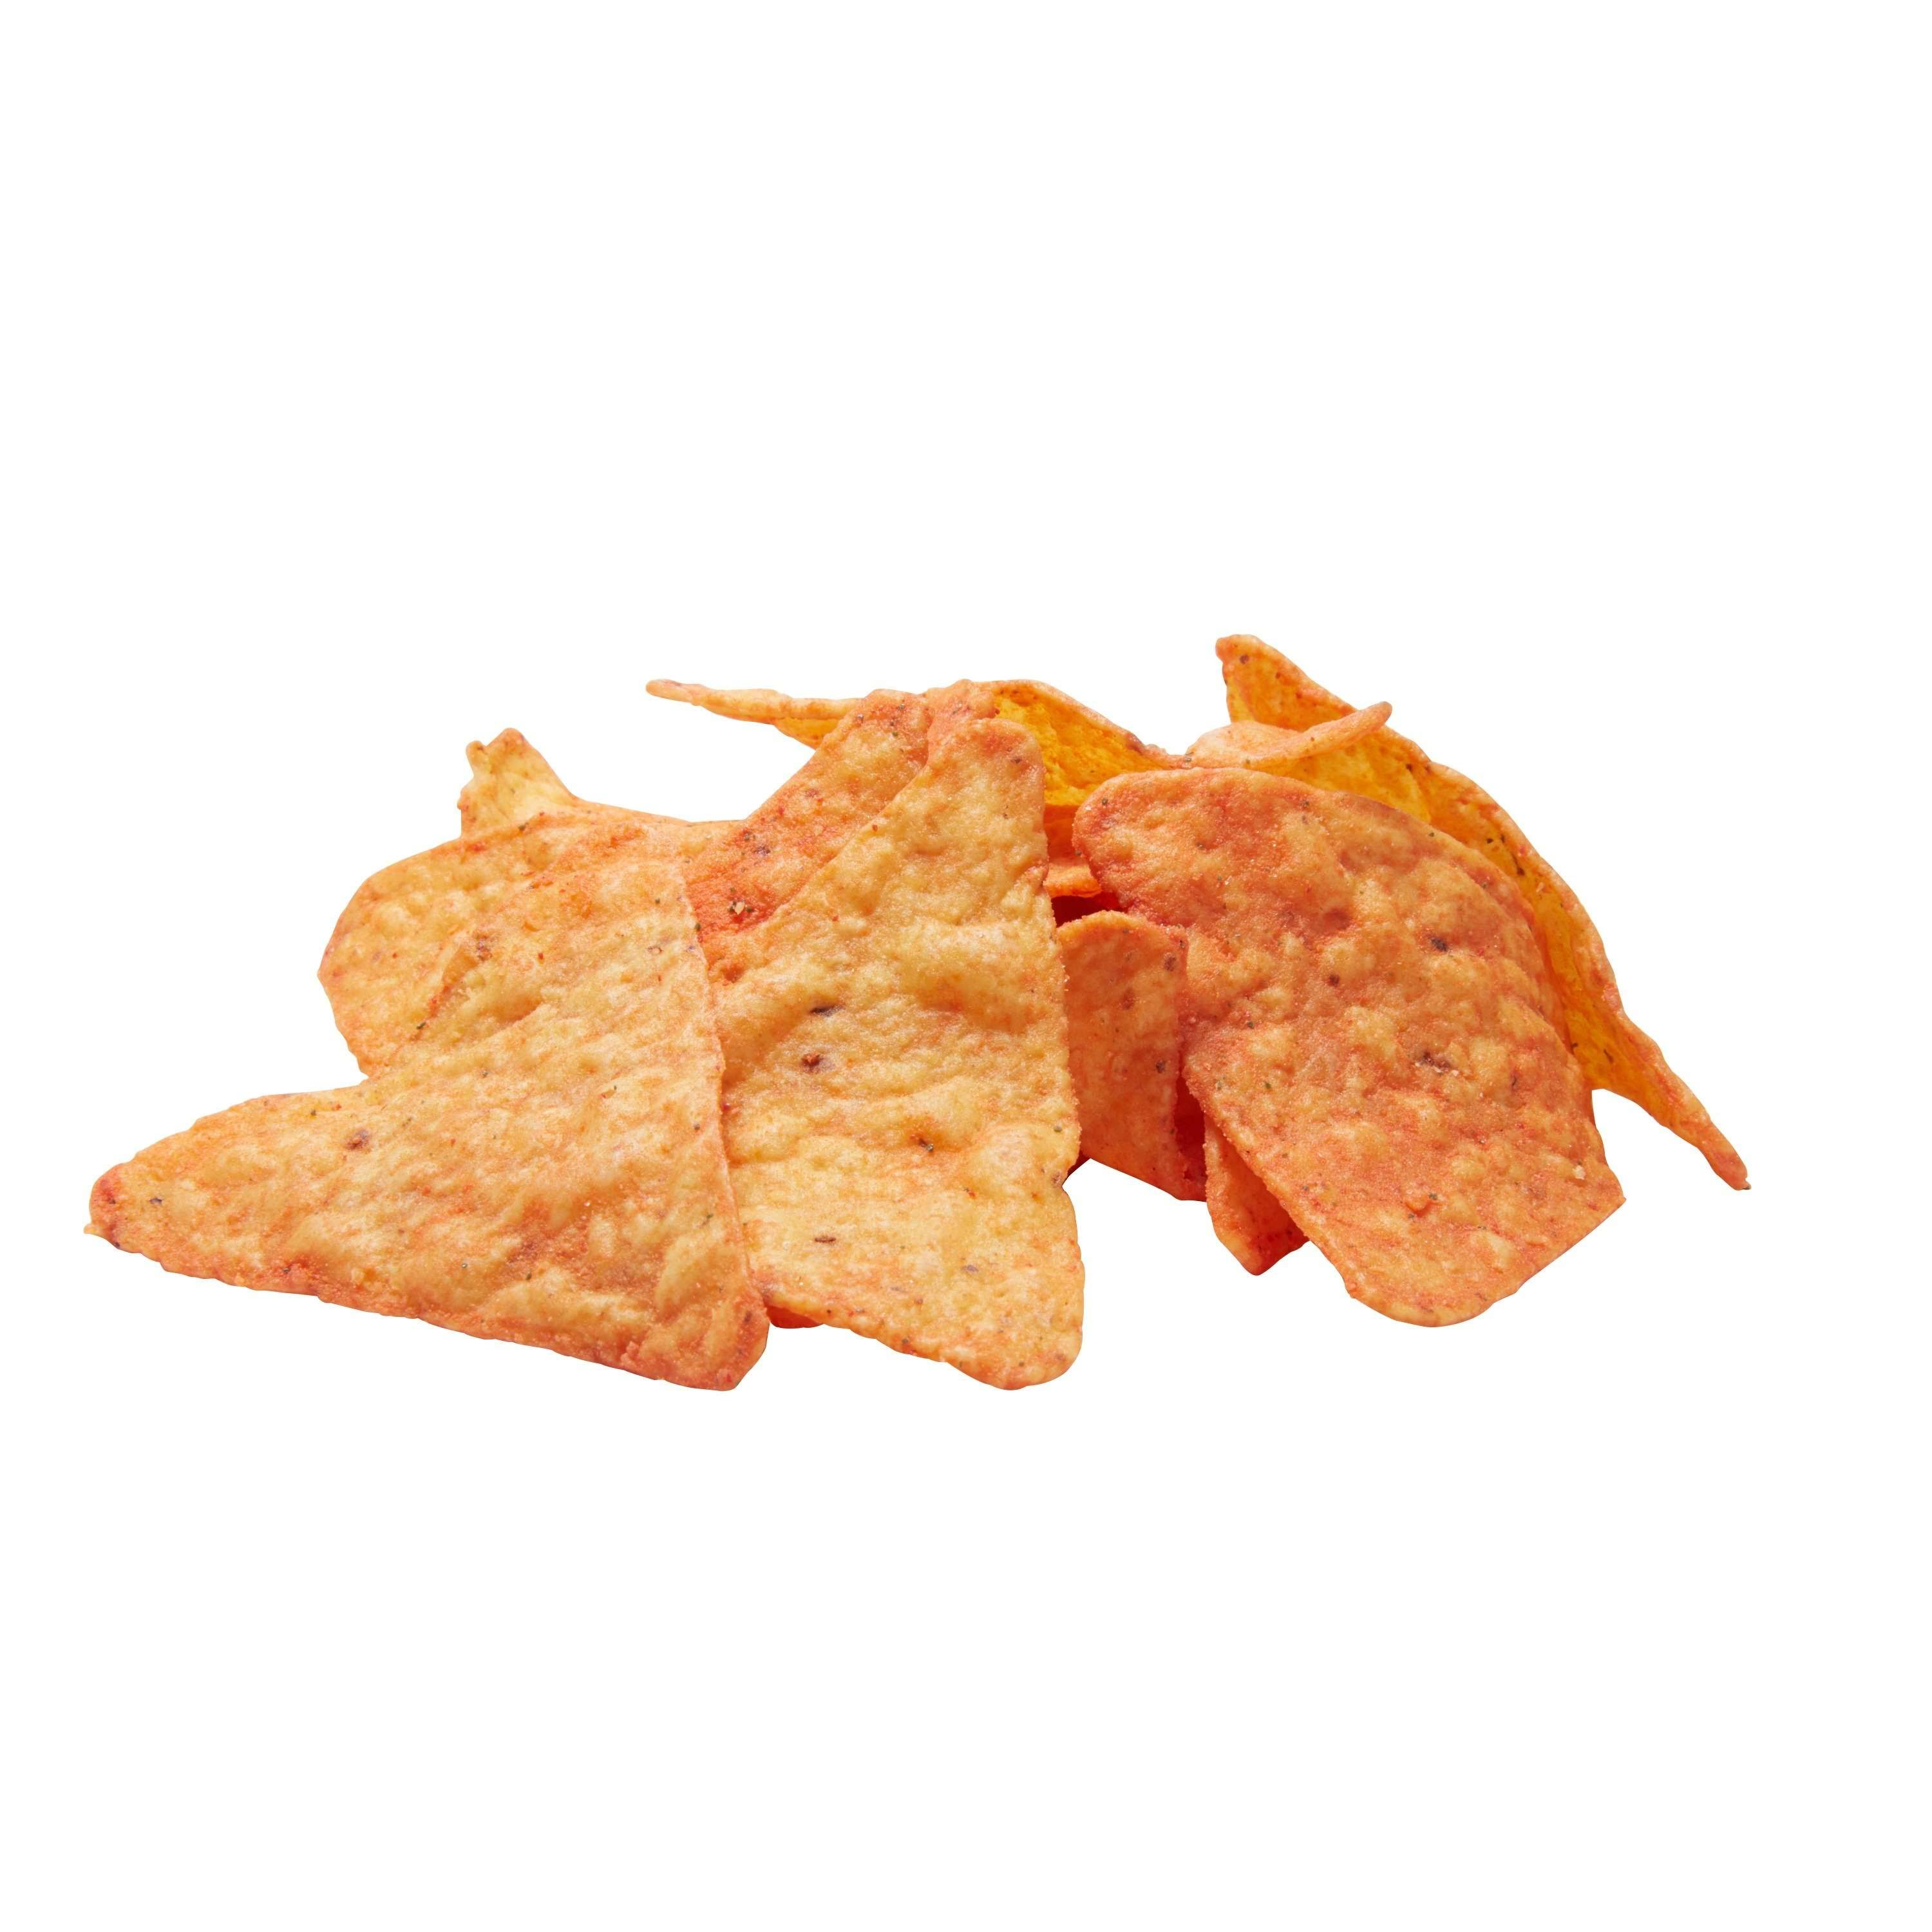 Doritos Doritios Spicy Nacho Tortilla Chips 1.75 oz Plastic Bag